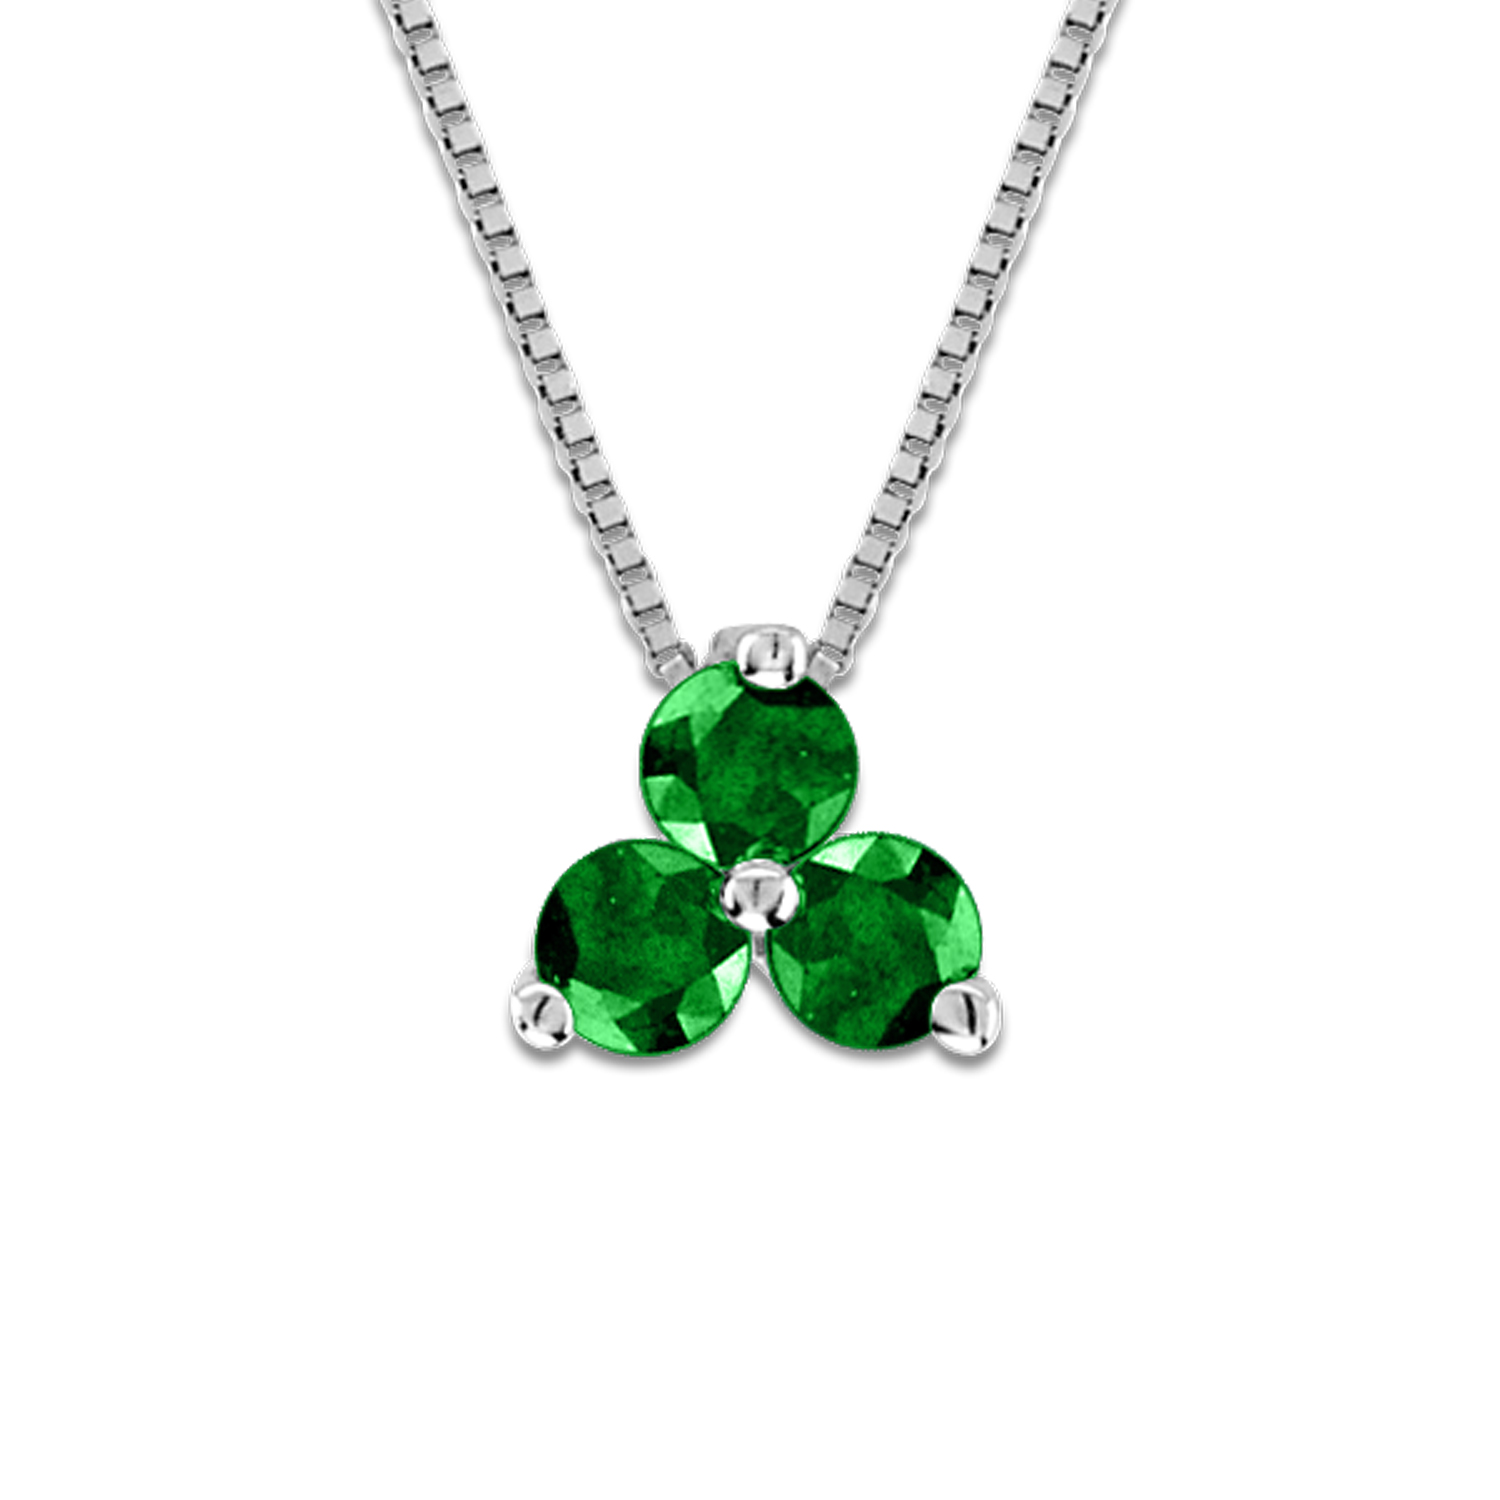 View 0.15cttw Emerald Three Stone Pendant in 14k Gold